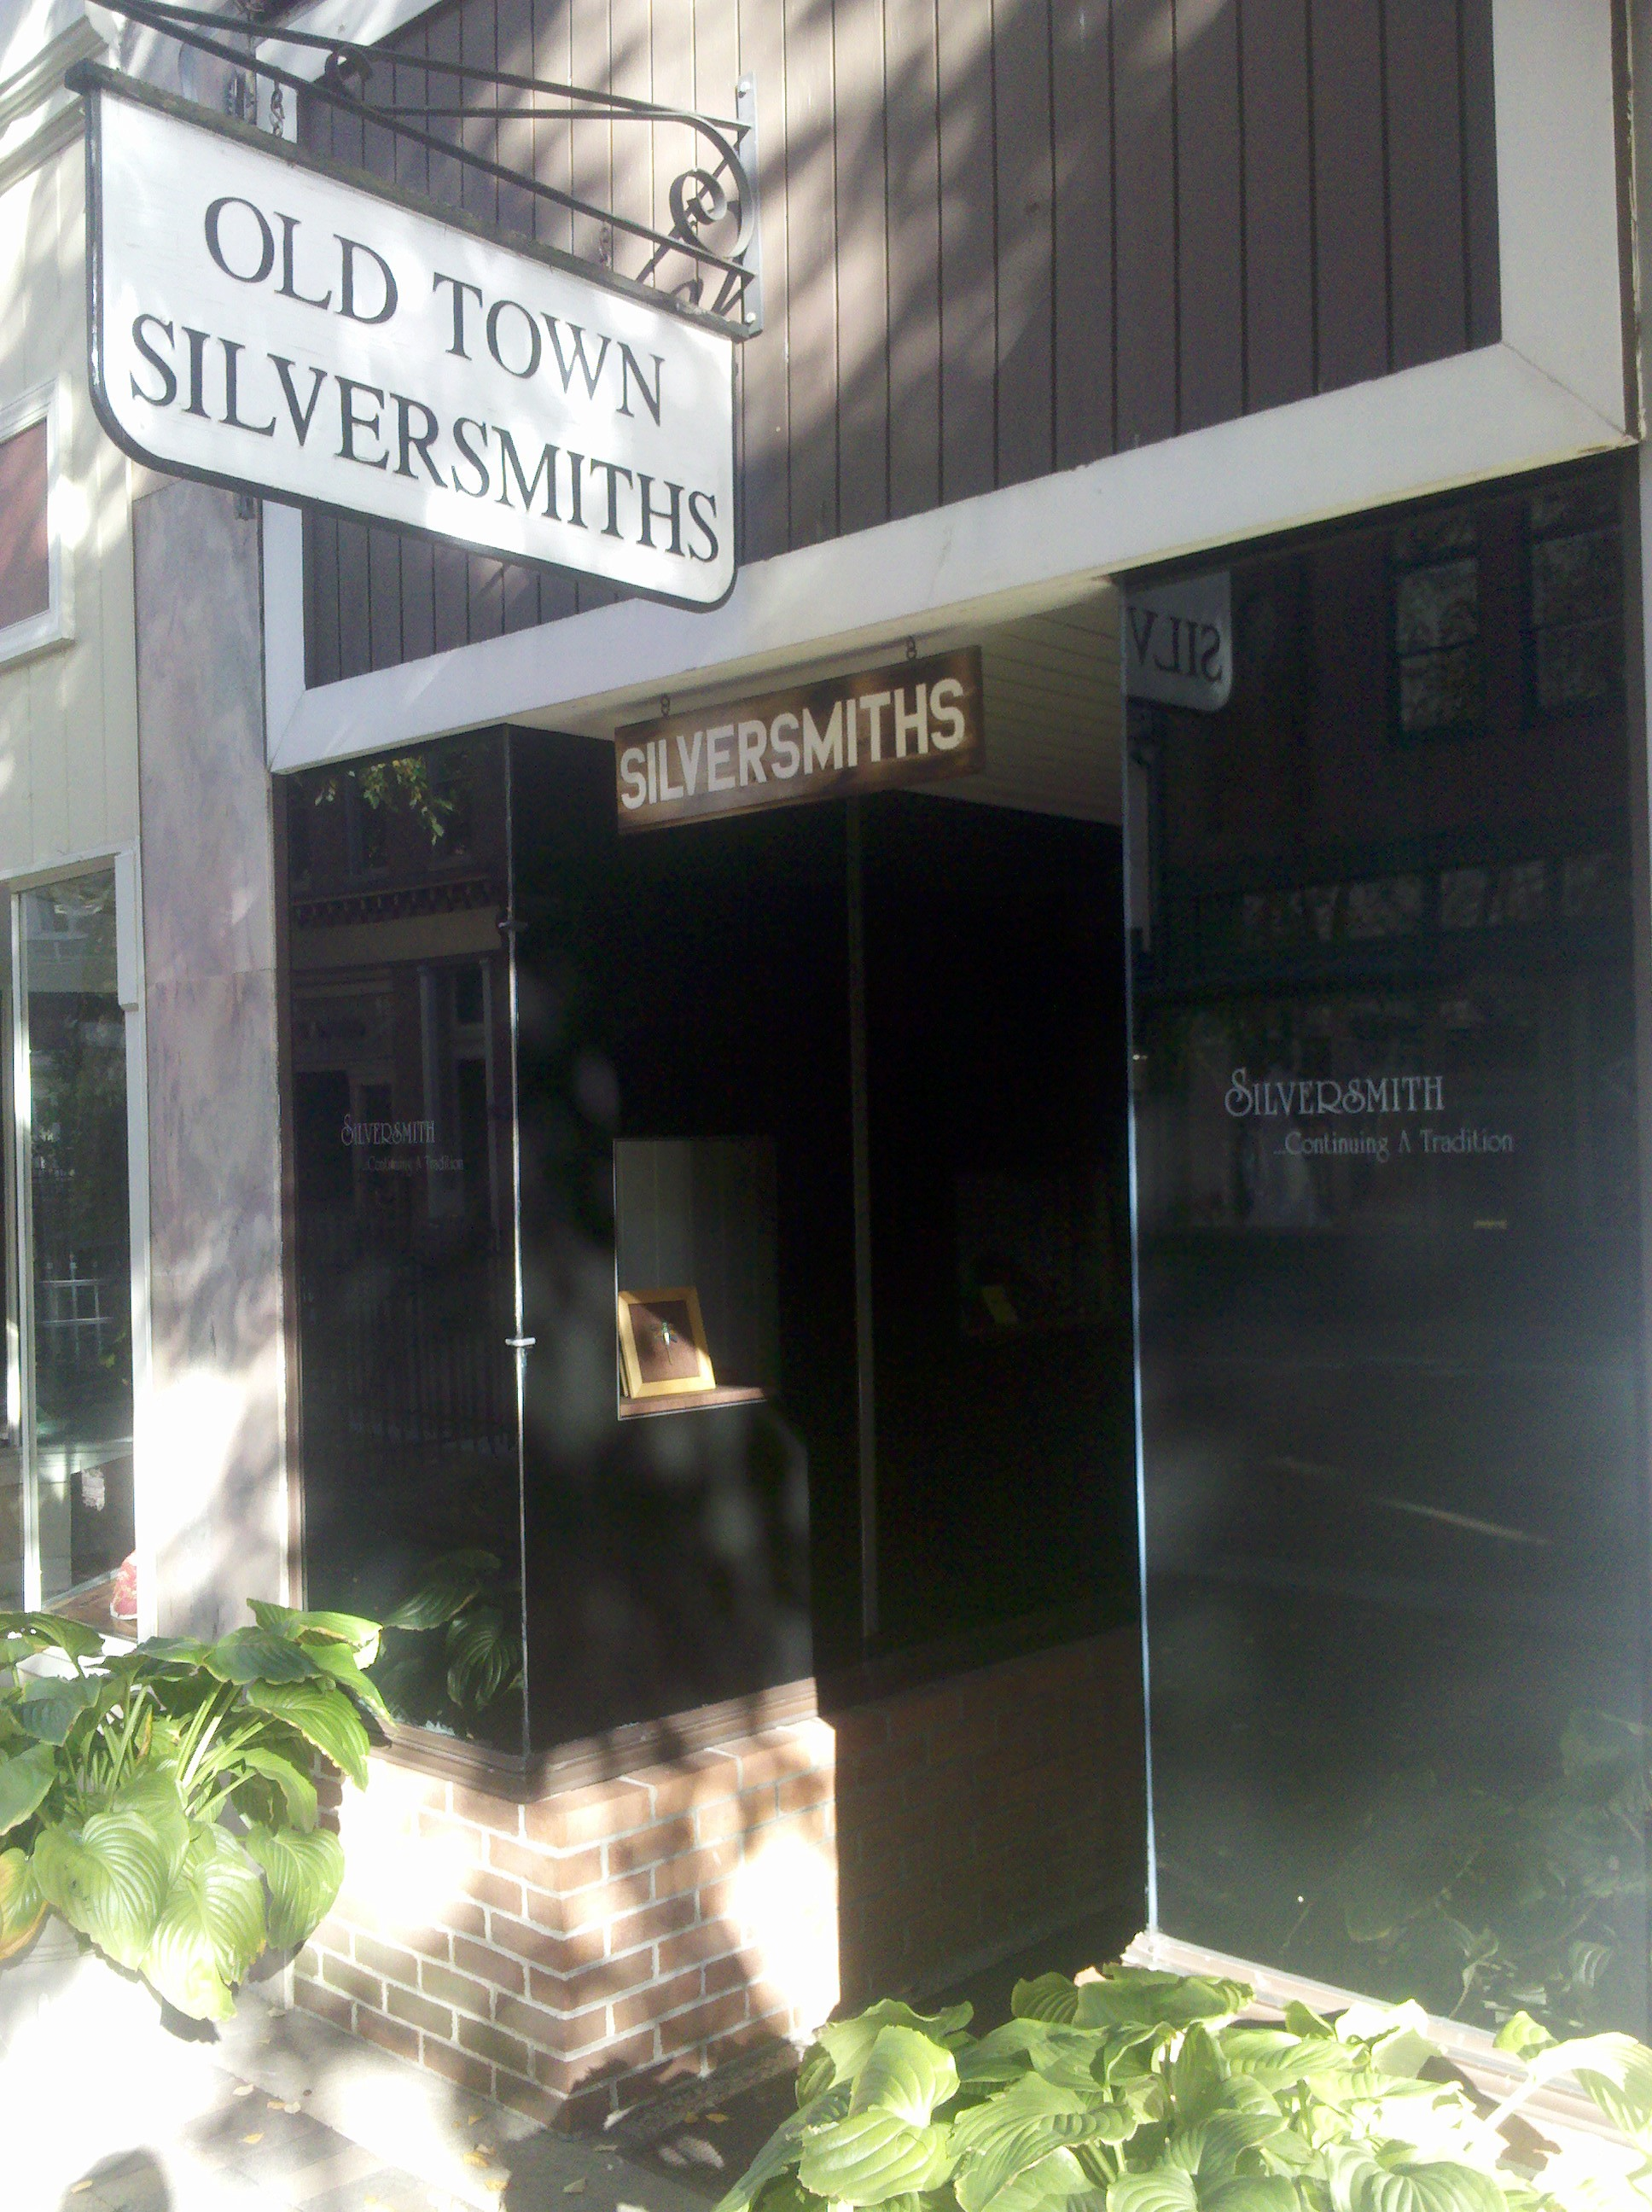 Old Town Silversmiths